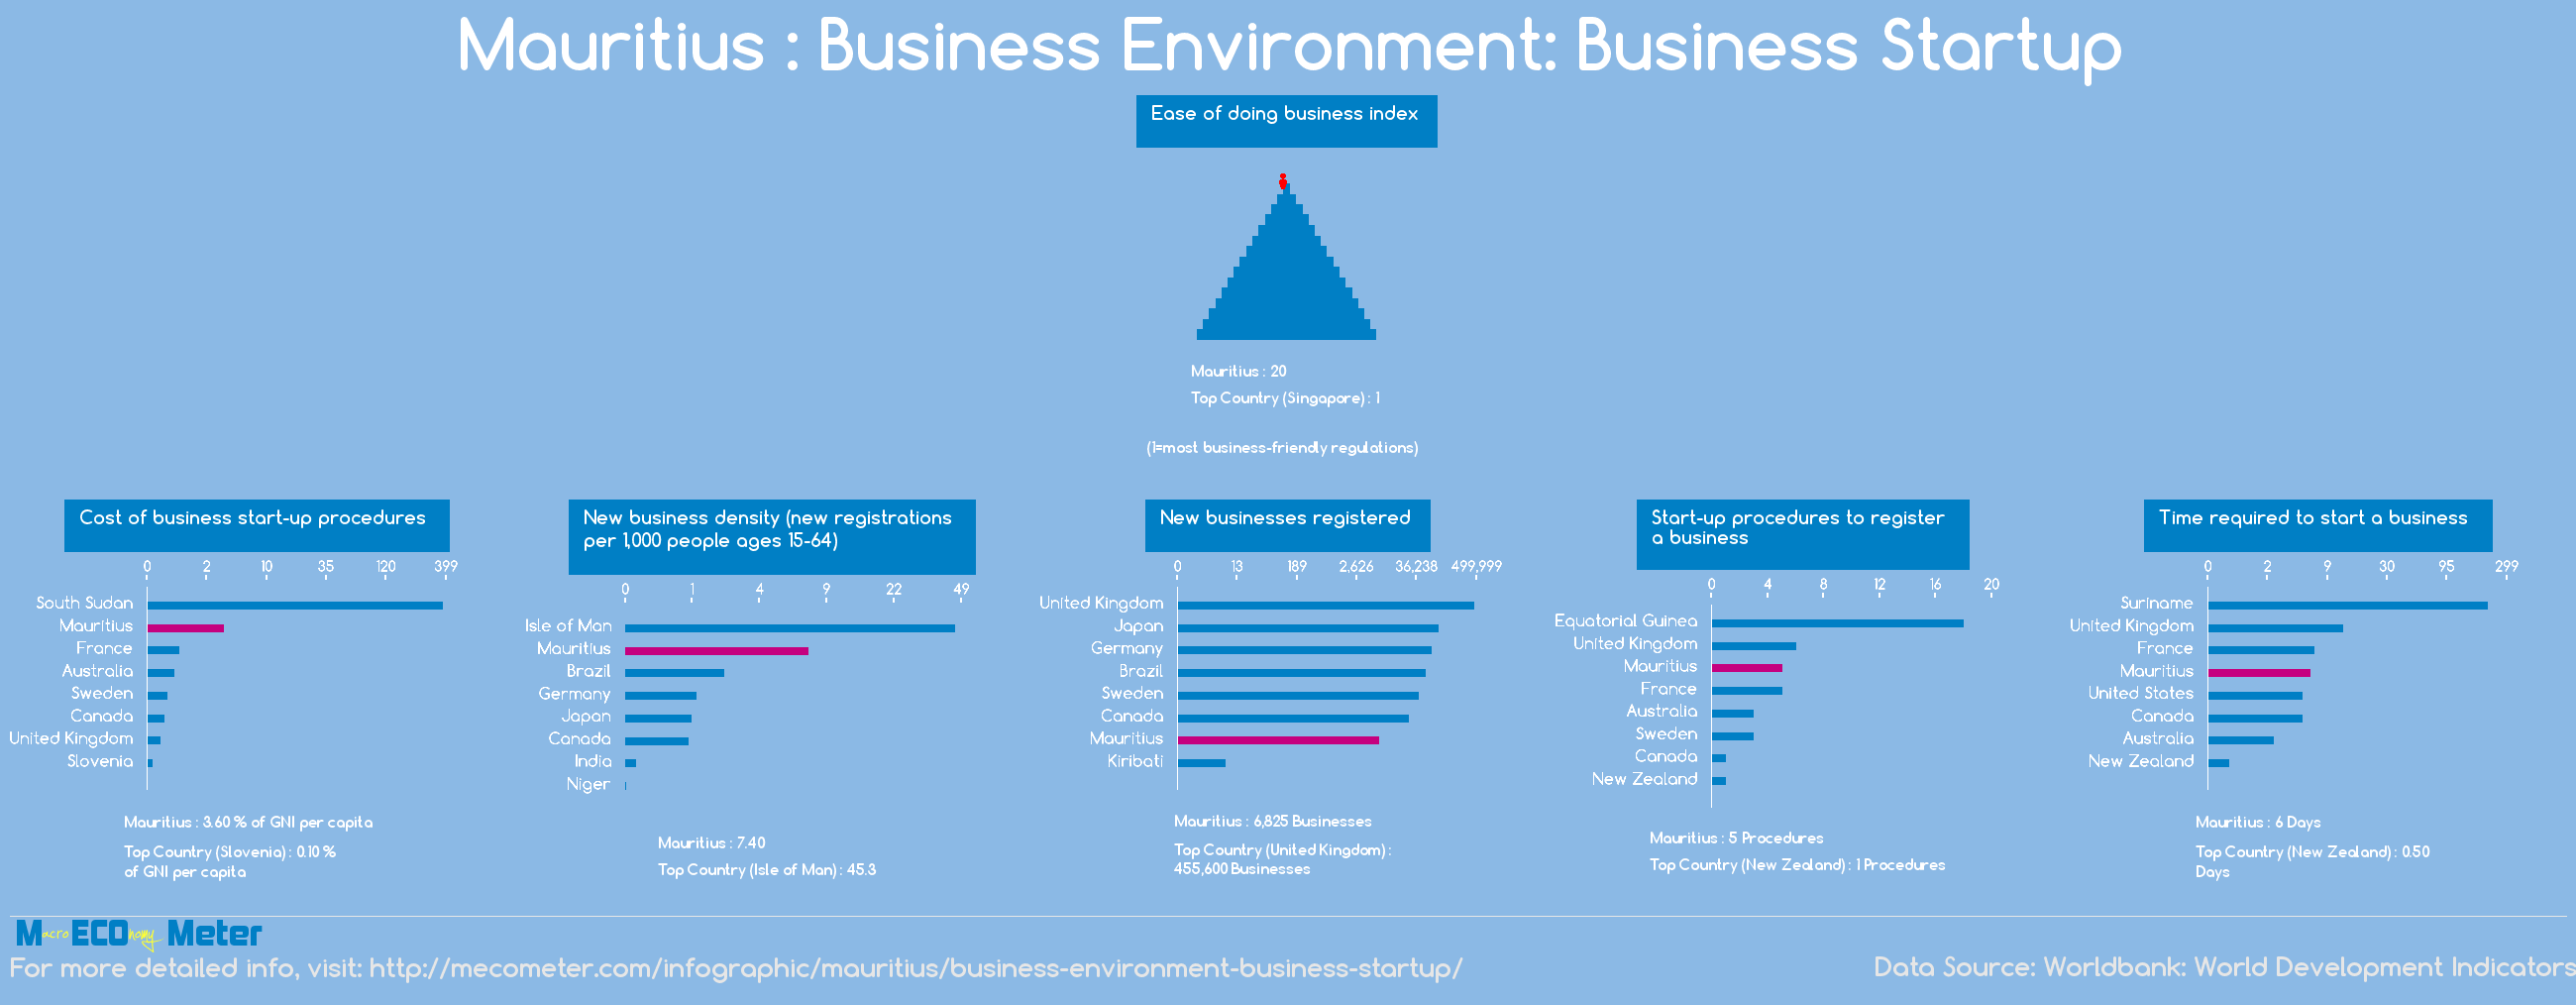 Mauritius : Business Environment: Business Startup